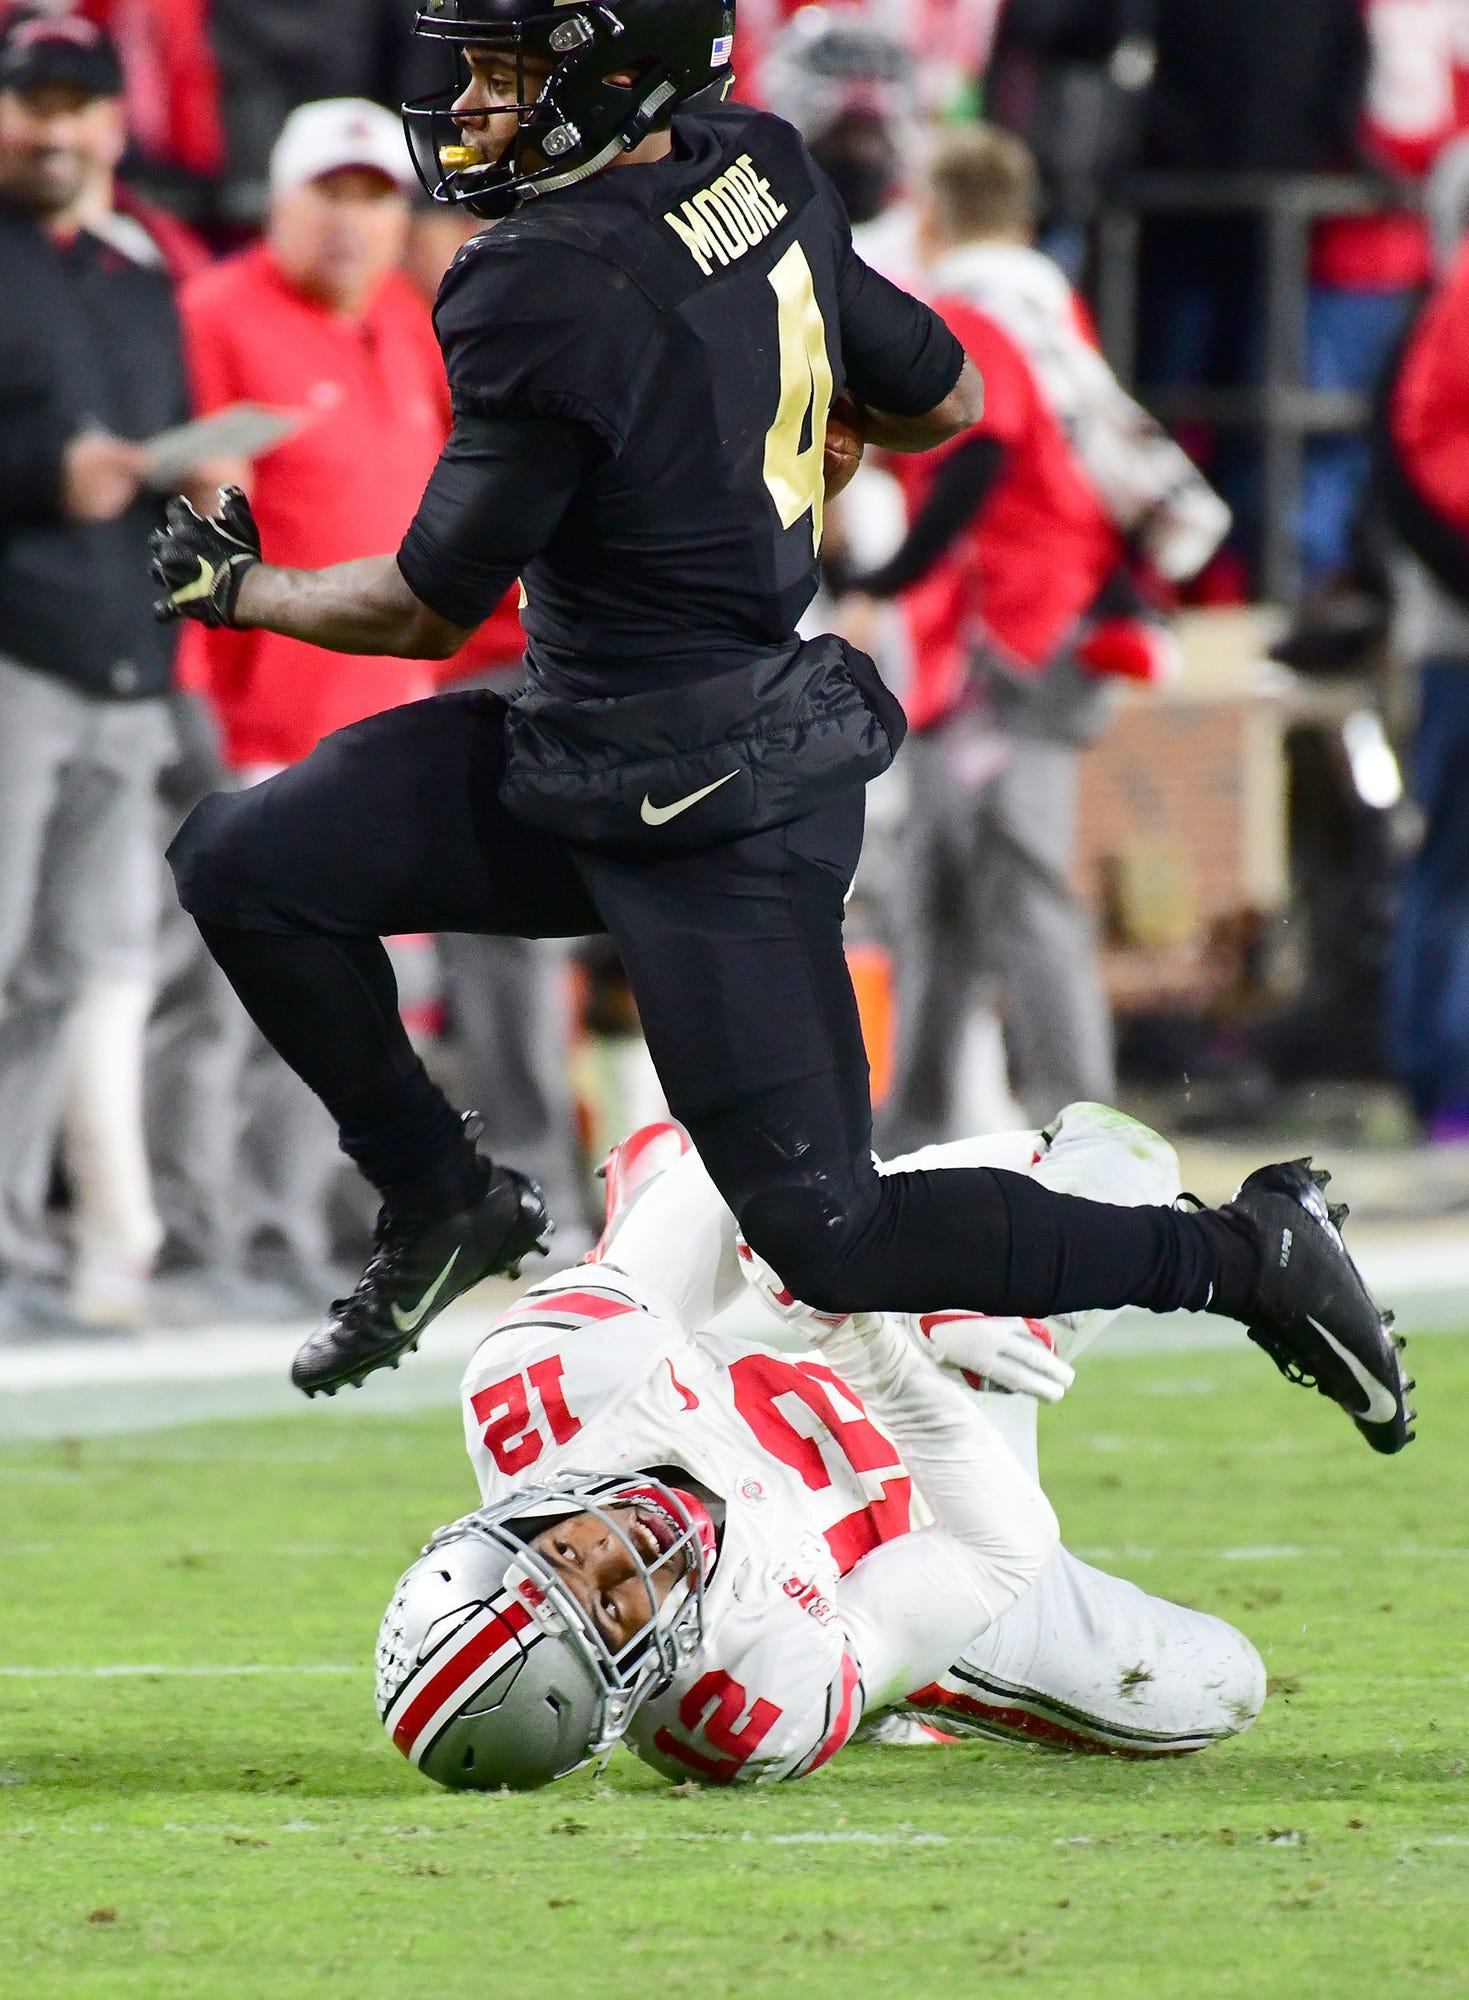 Purdue's Rondale Moore leaps over an Ohio State defender as Purdue upsets Ohio State in West Lafayette on Saturday October 20, 2018.